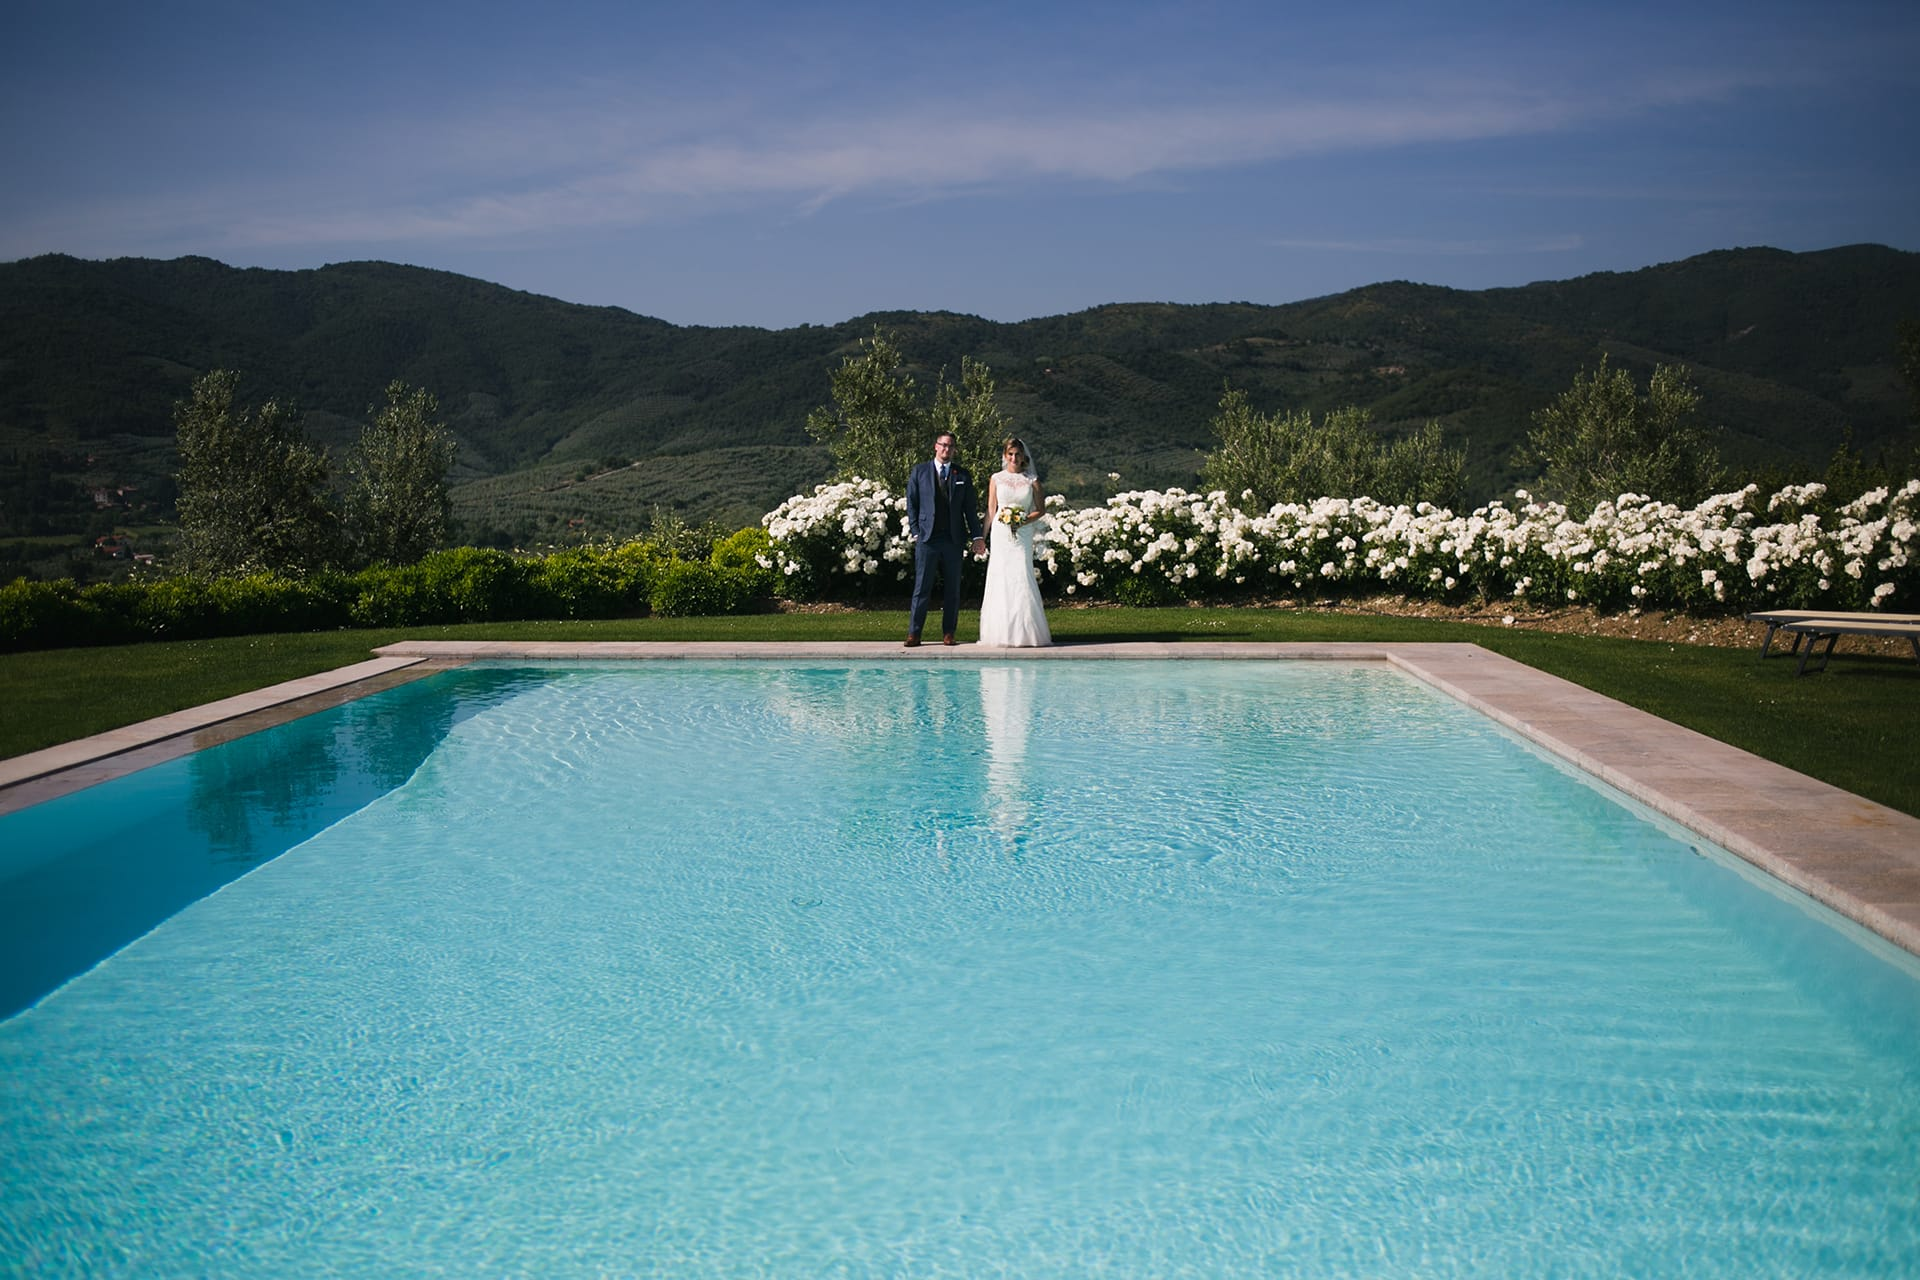 Wedding Location in Castiglion Fiorentino, Tuscany